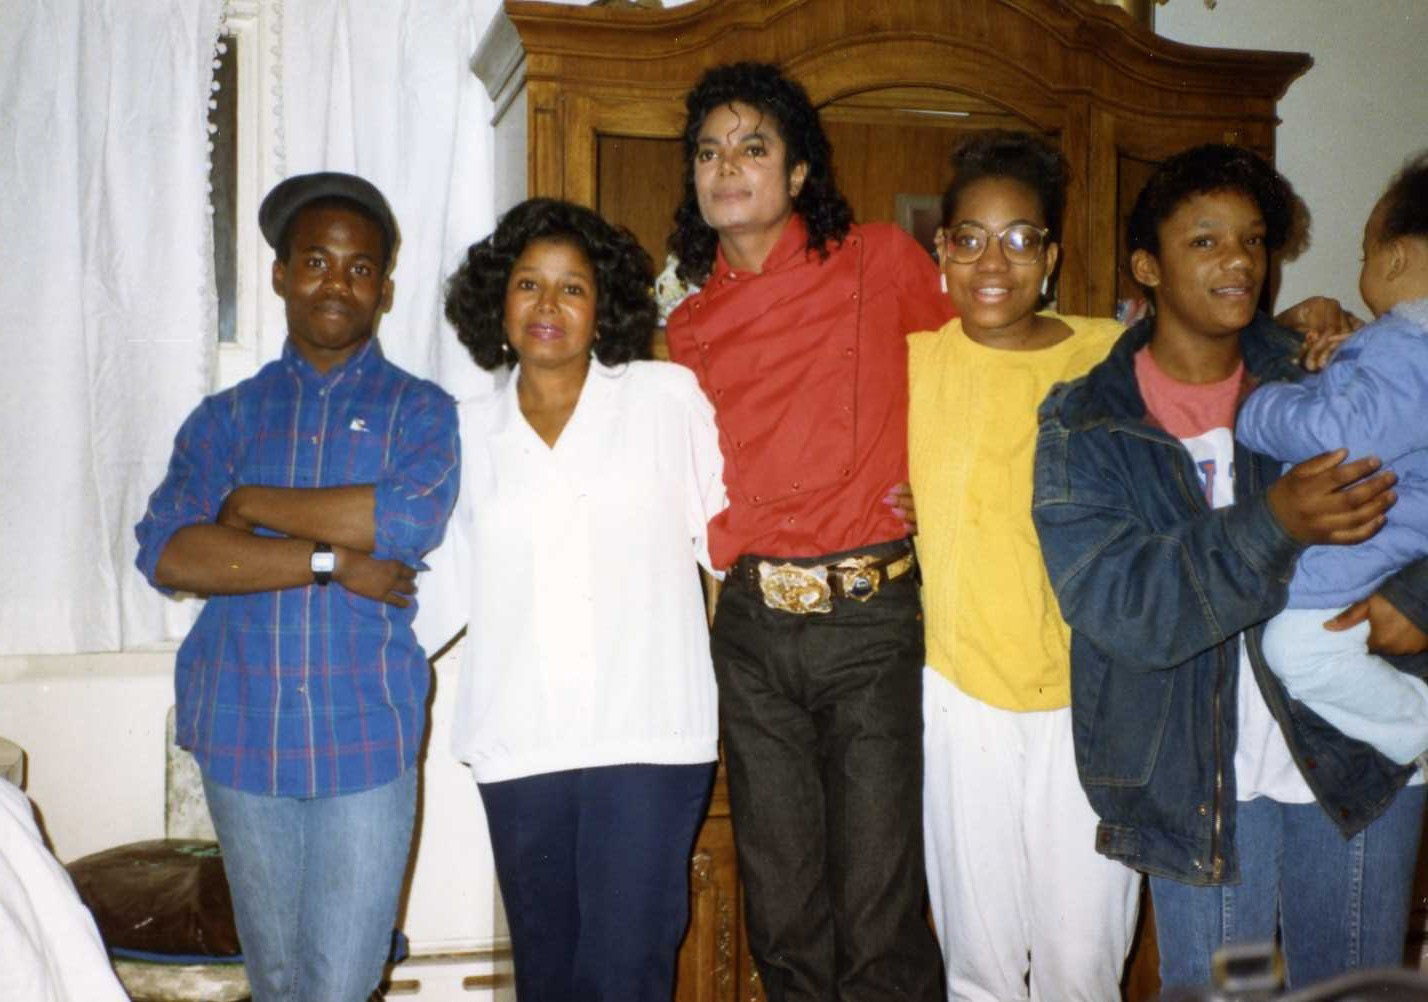 Michael With Family And फ्रेंड्स